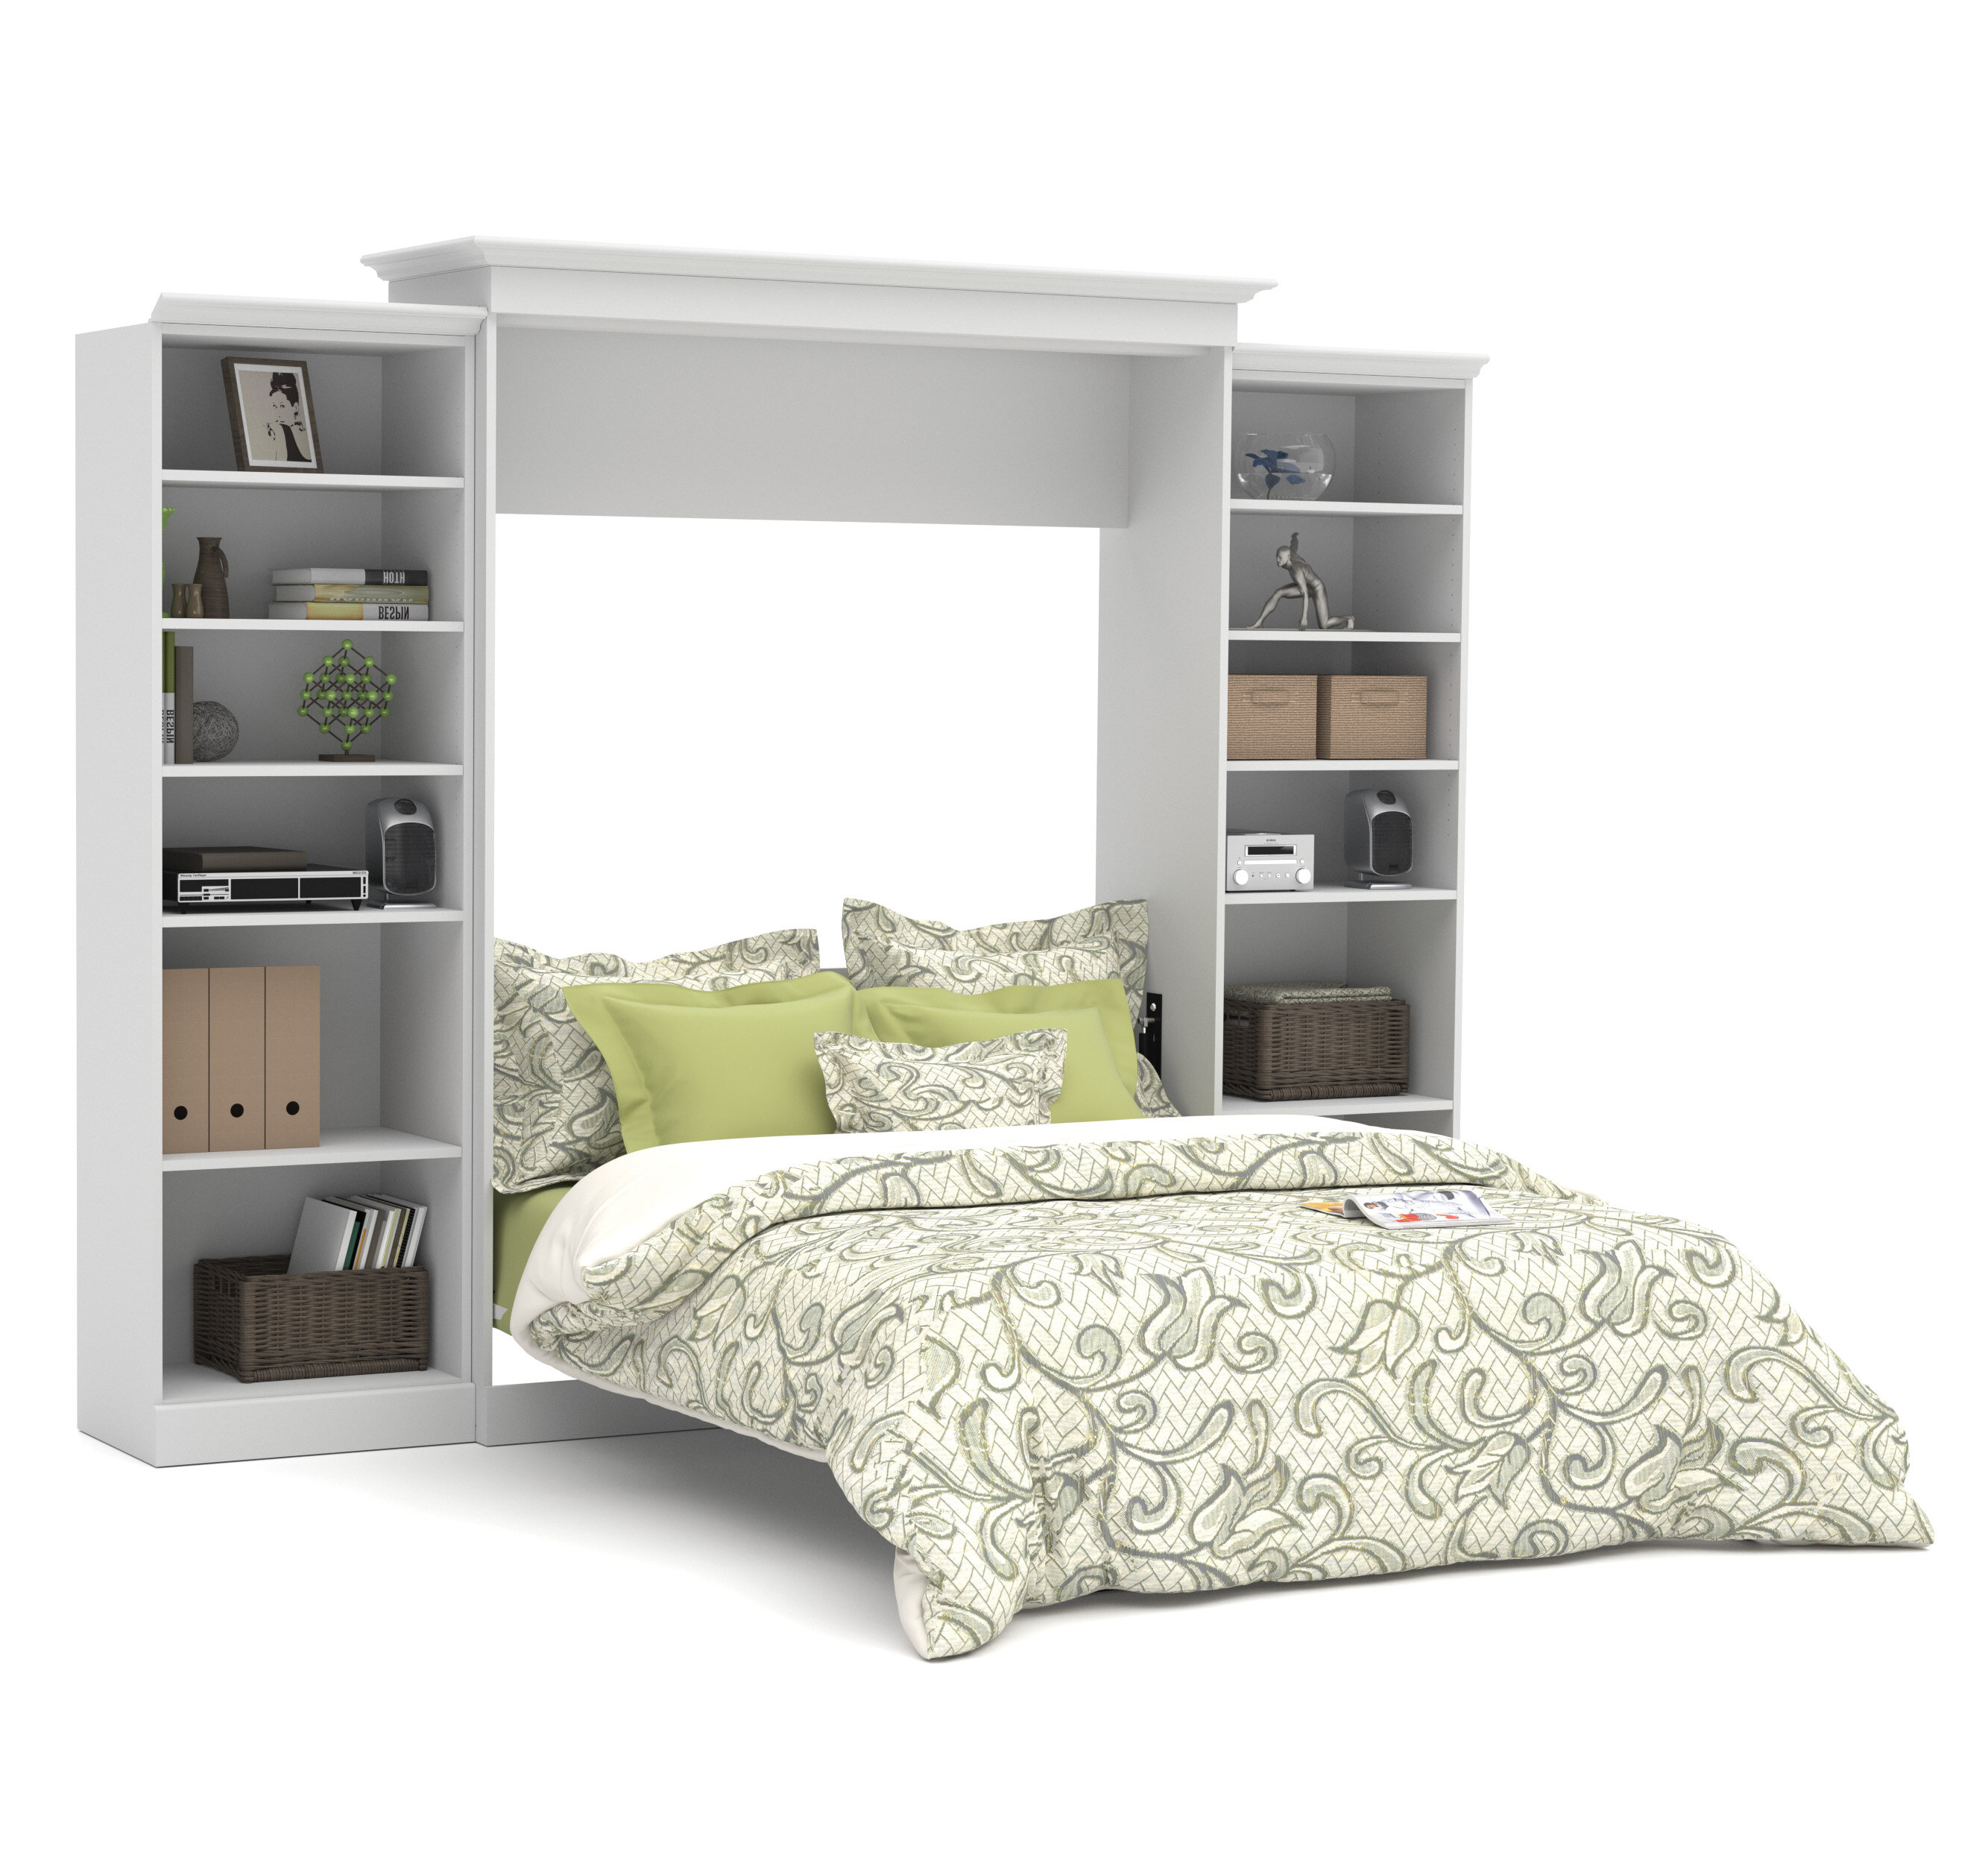 bed grey product devonshire home murphy today with queen pier one pearl cabinet overstock in garden free shipping